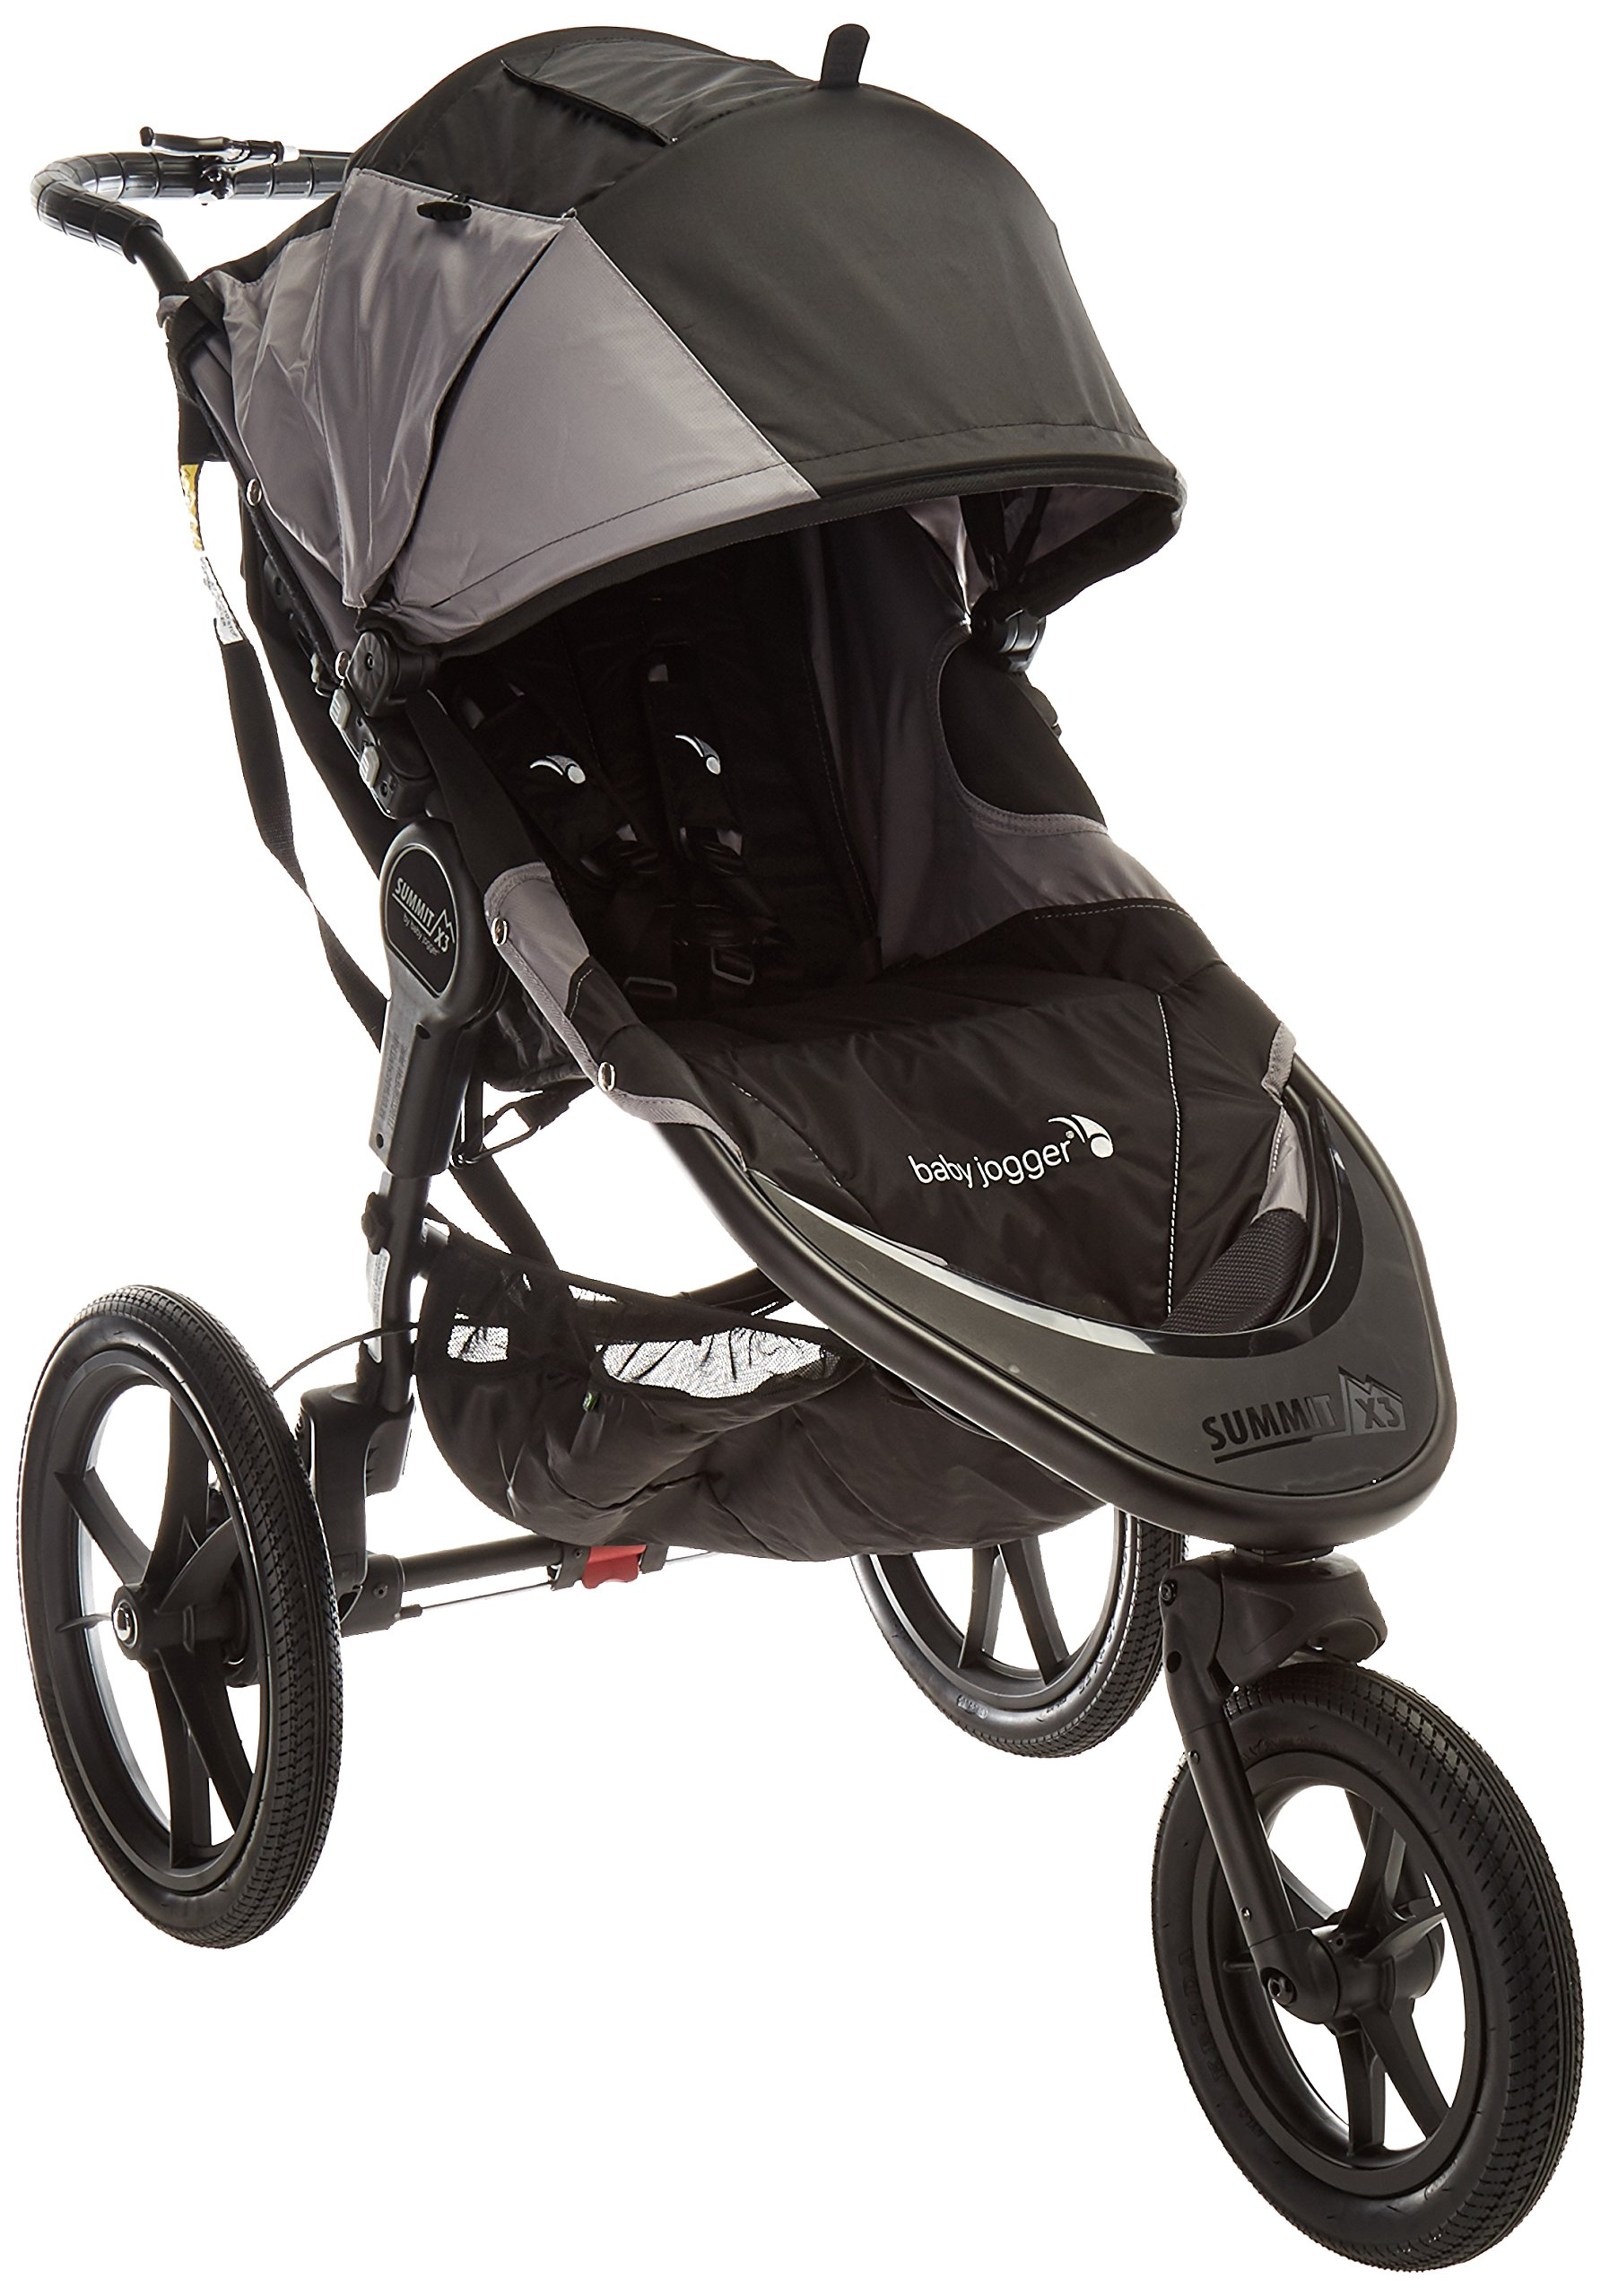 Amazon.com : Baby Jogger Weather Shield Stroller Cover